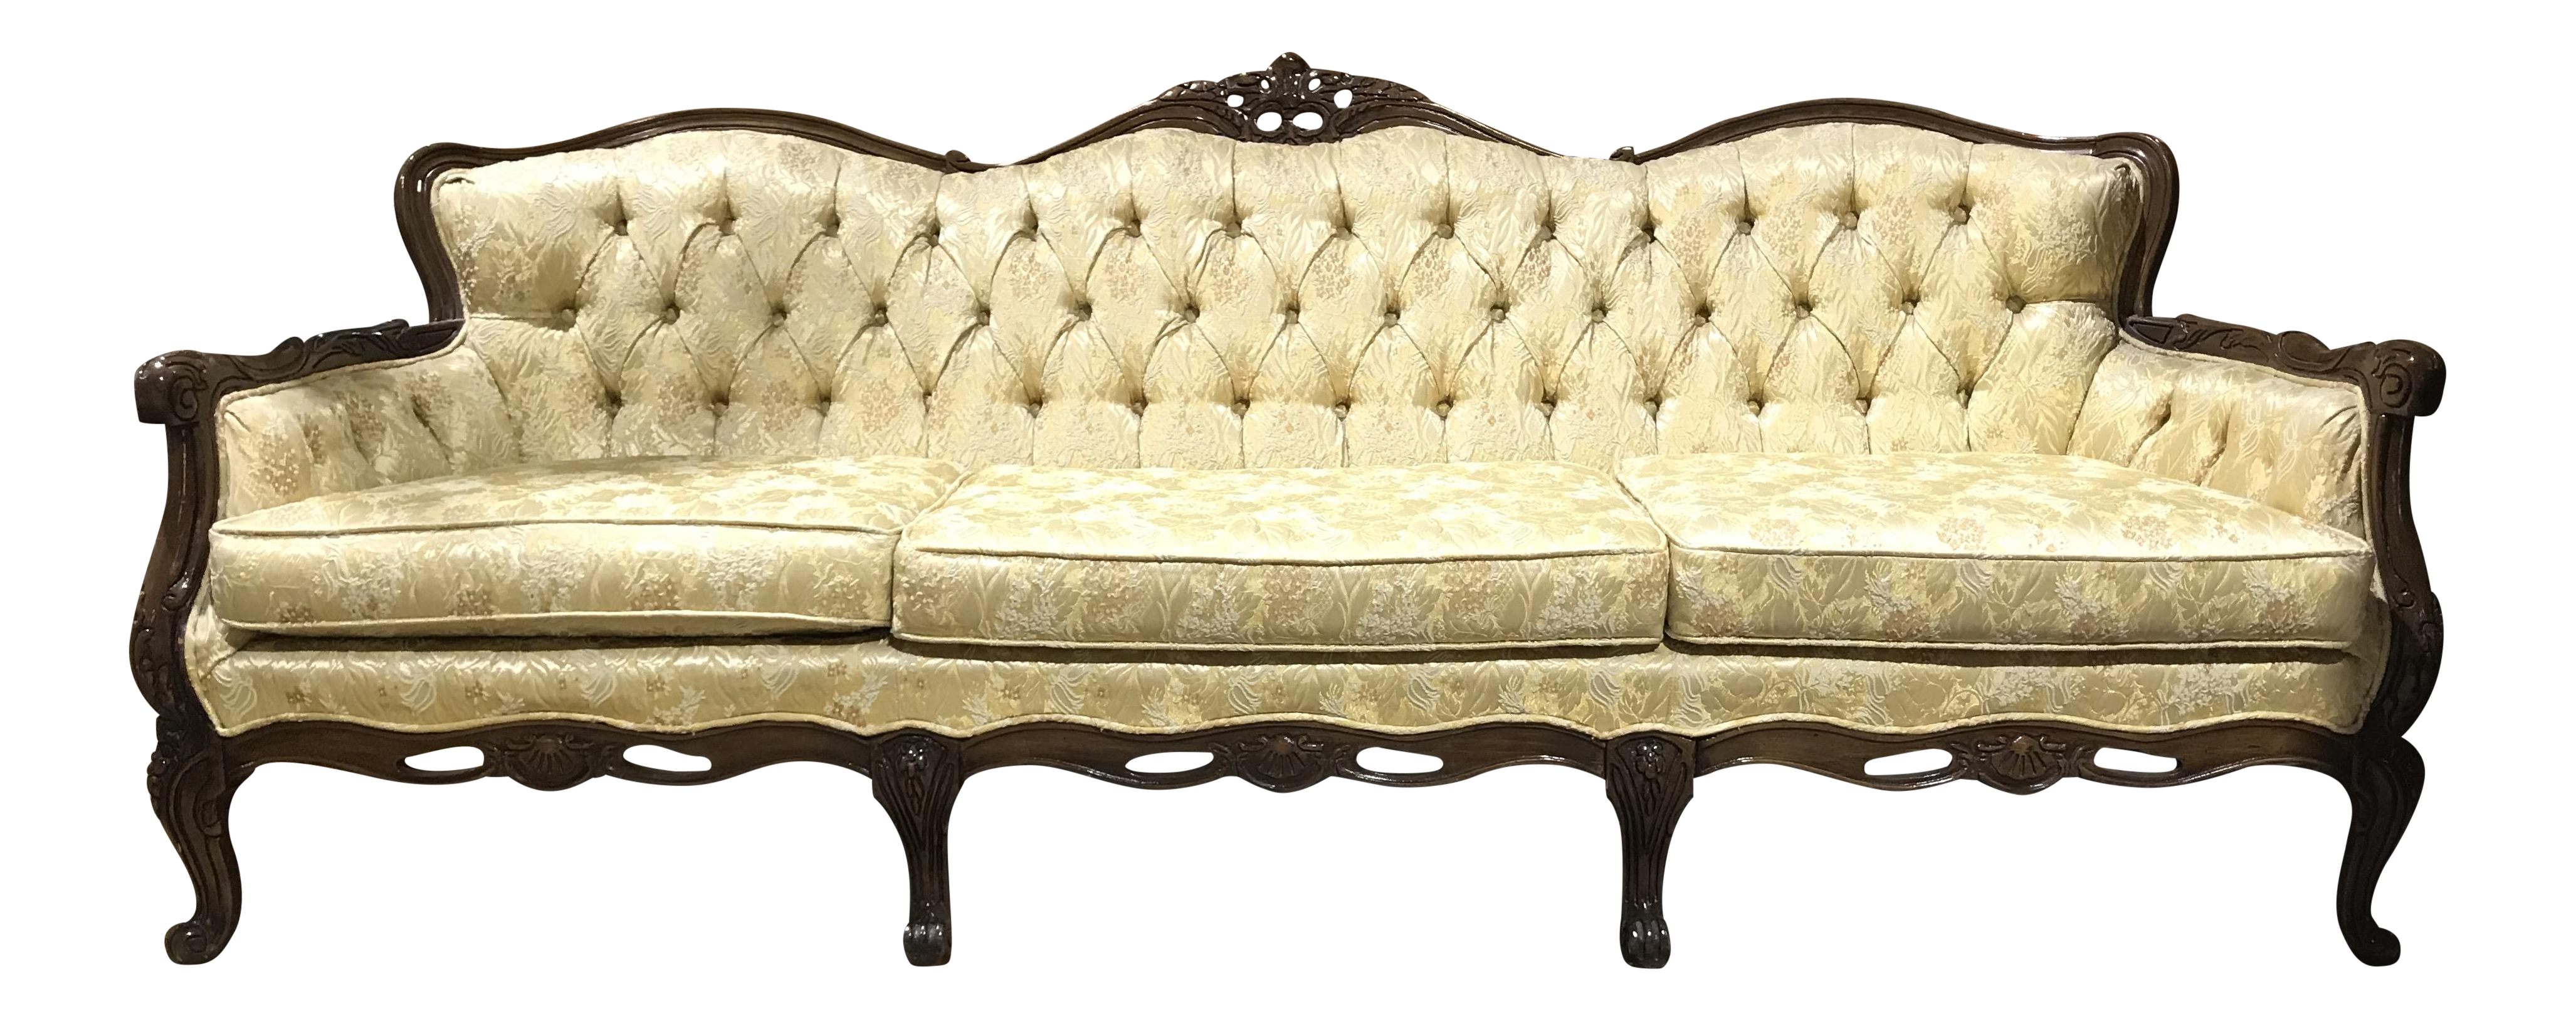 room additional livings provincial formal sets amazing magnificent wood stores furniture homey traditional antique french sofa with your for luxury design posed of living